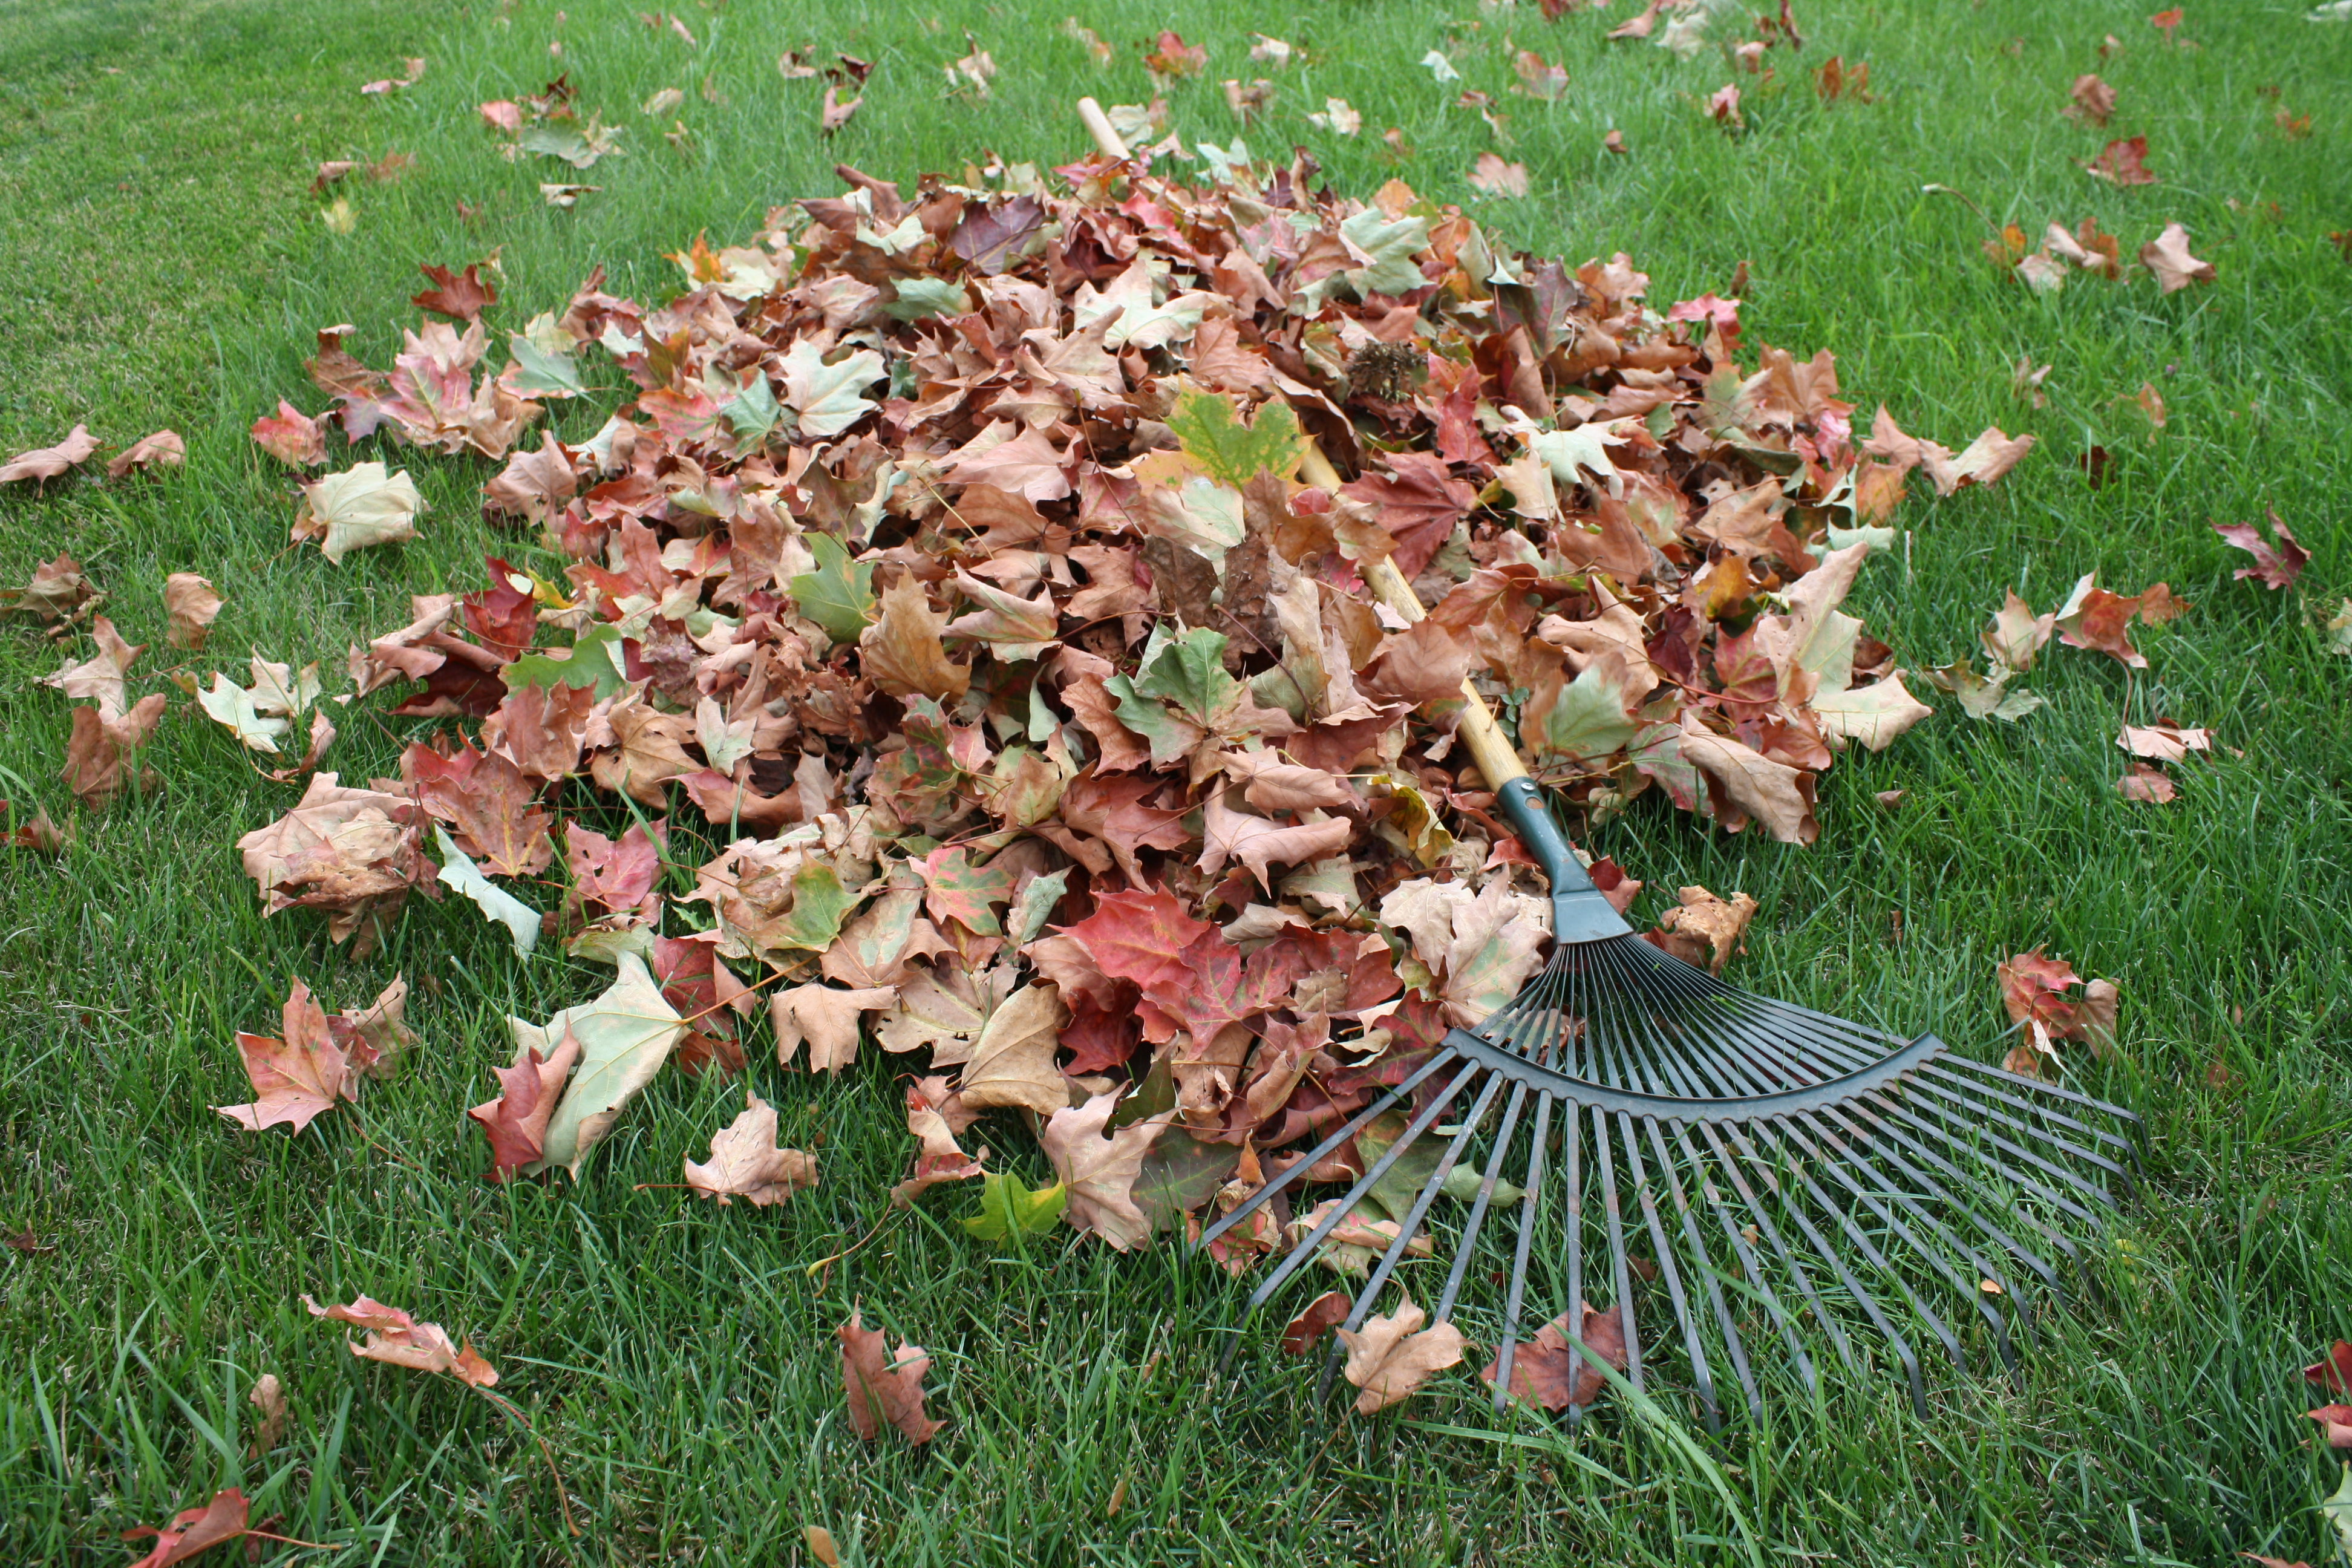 Pile of fall leaves that have just been raked